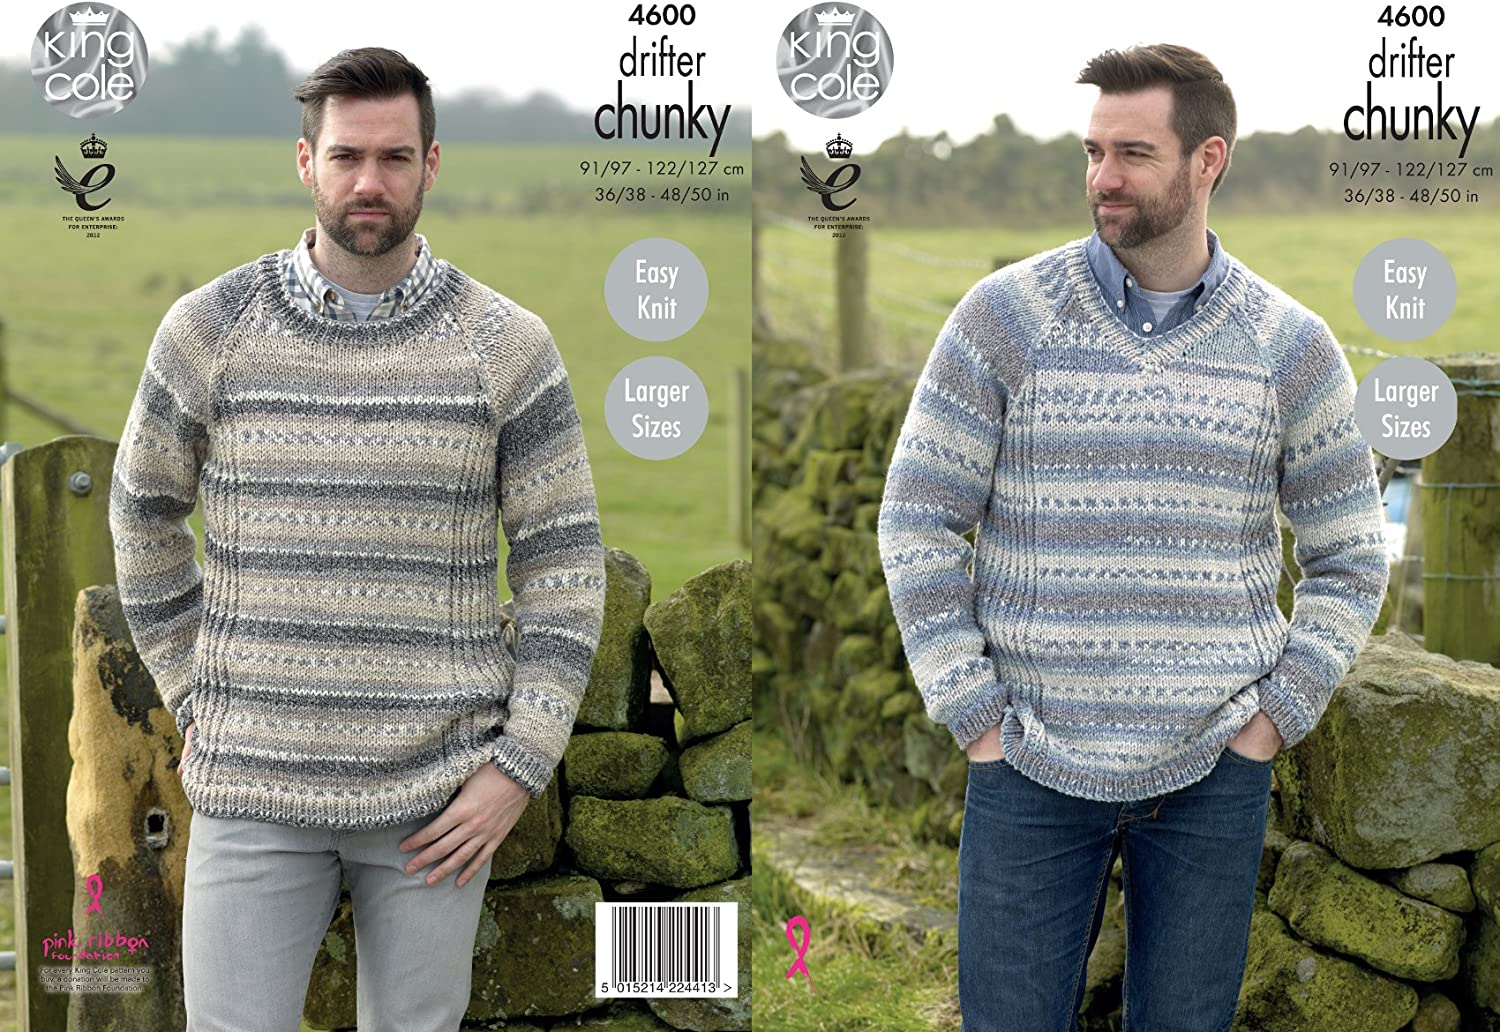 Easy Knit Ribbed Sweaters Mens Knitting Pattern King Cole Drifter Chunky 4600